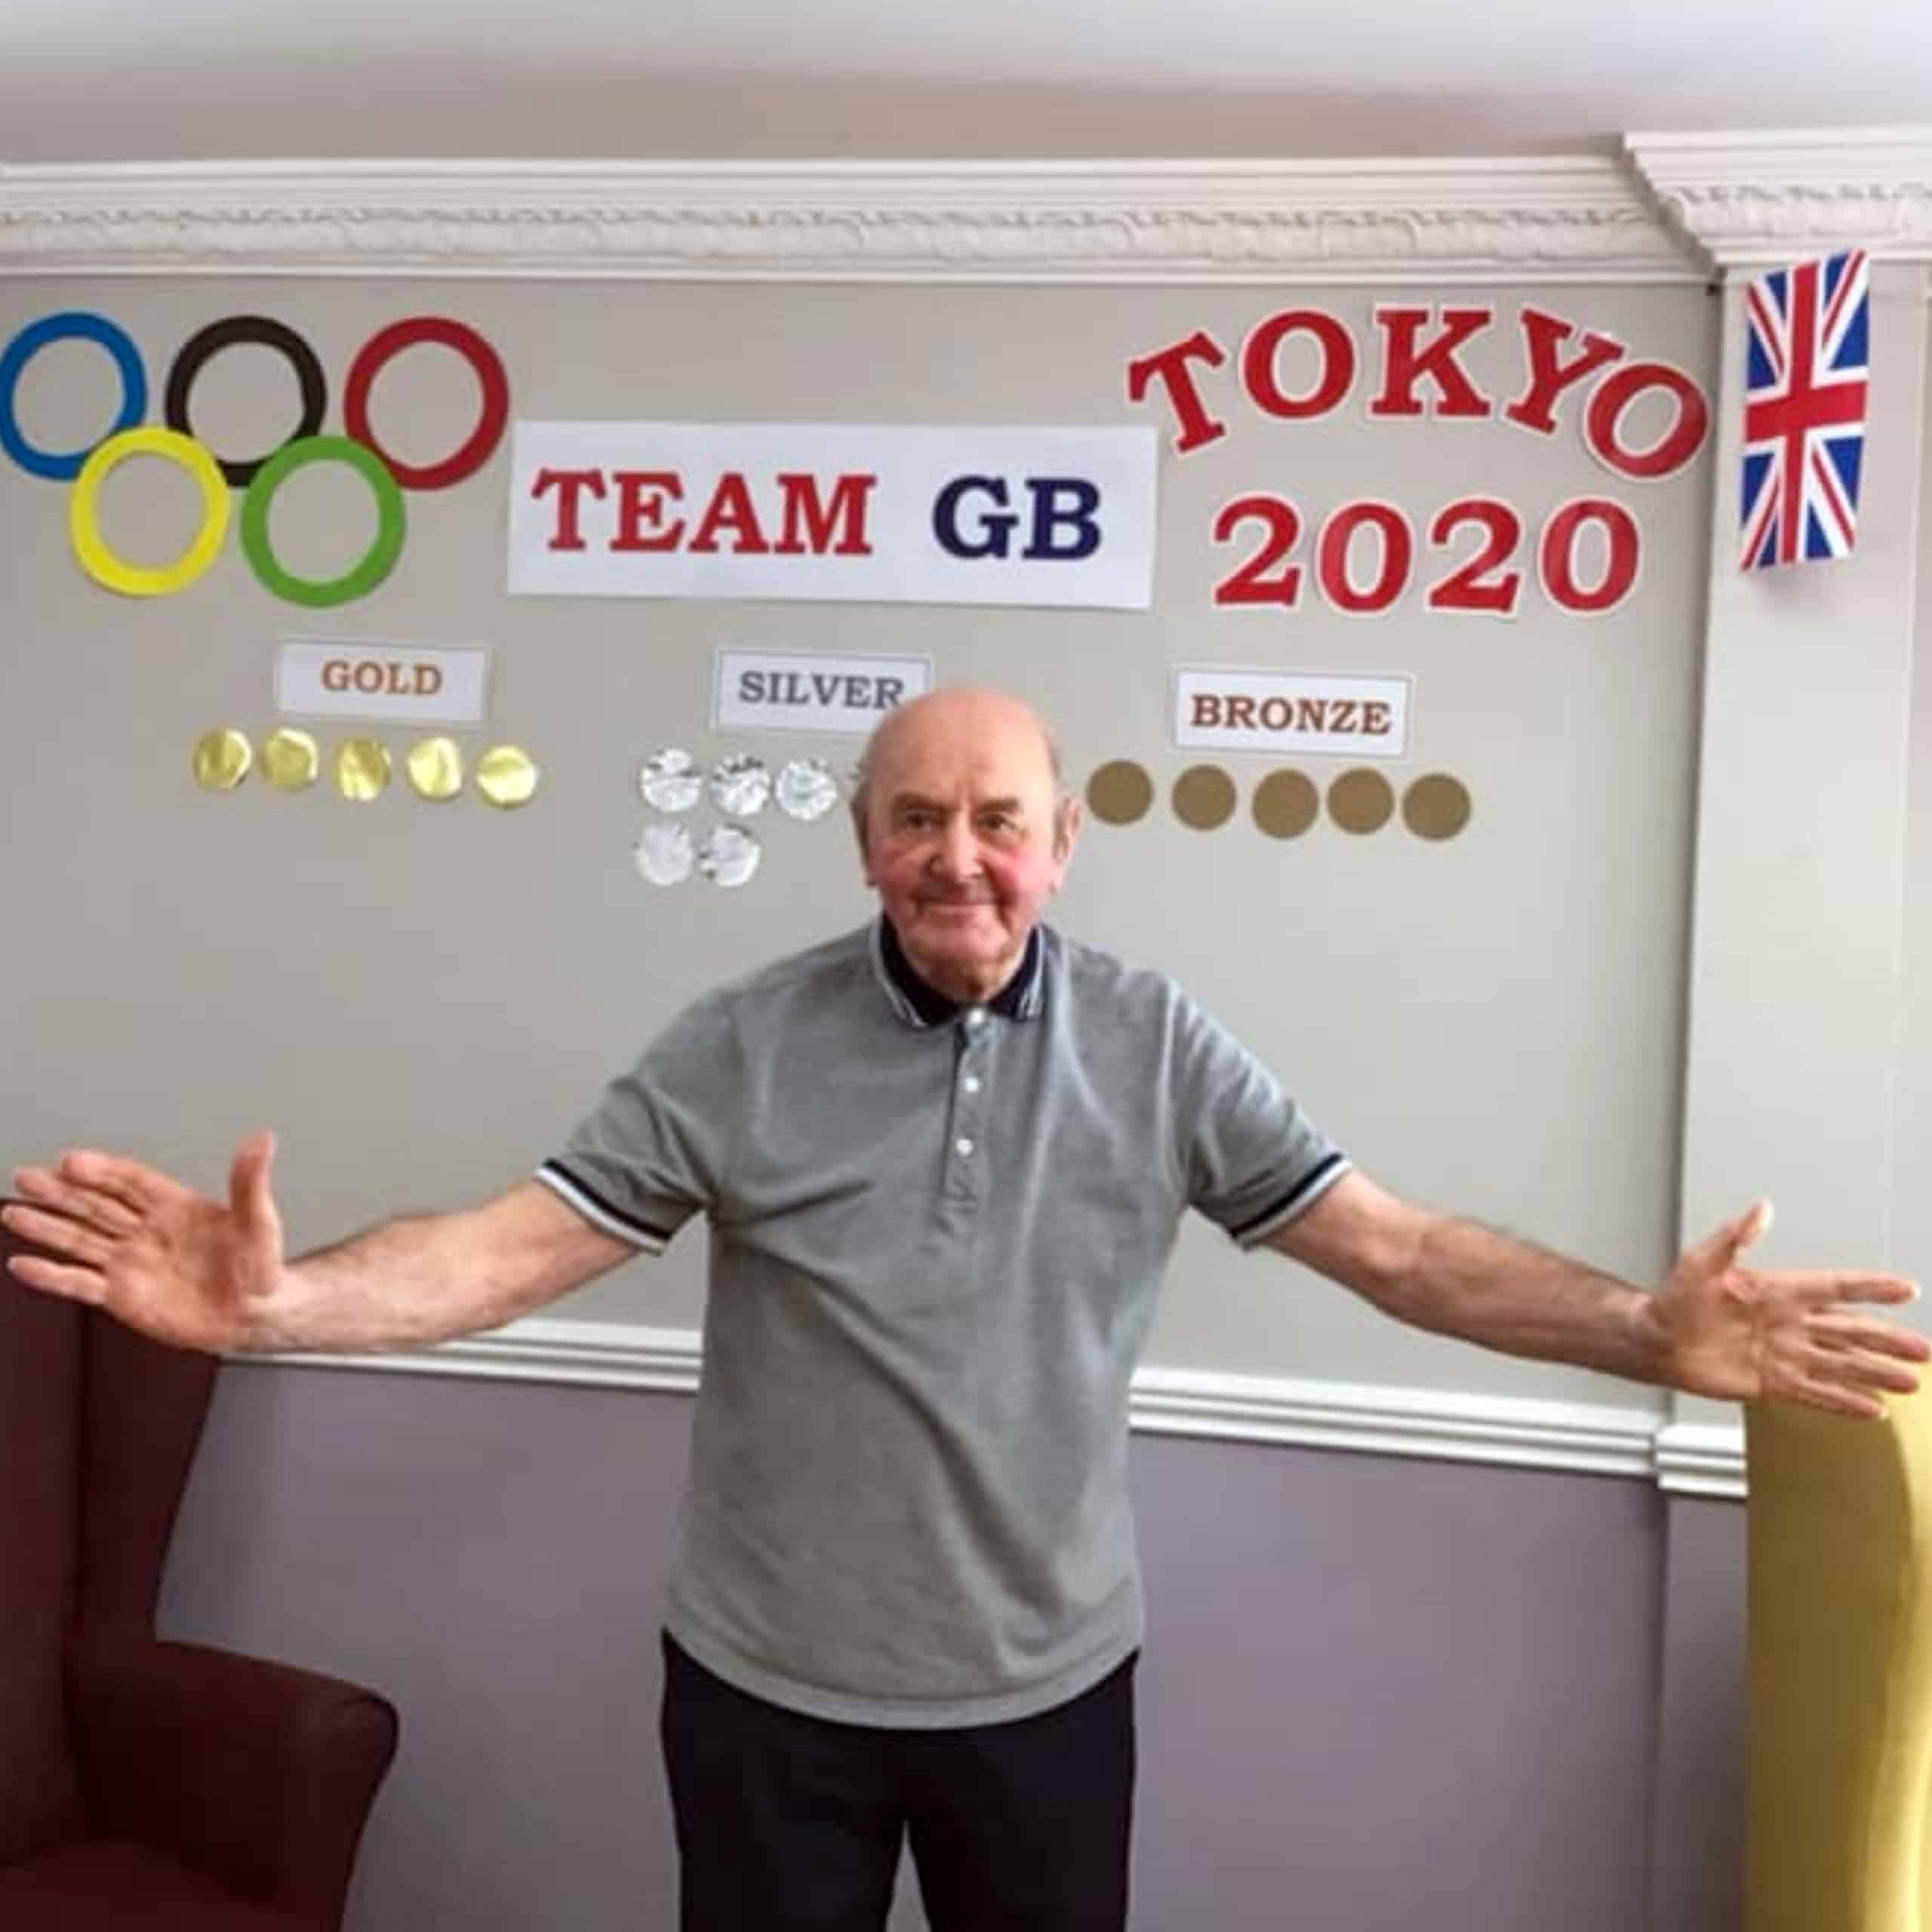 Ken, a resident of Willenhall care home Swan House with the home's Team GB medal board.